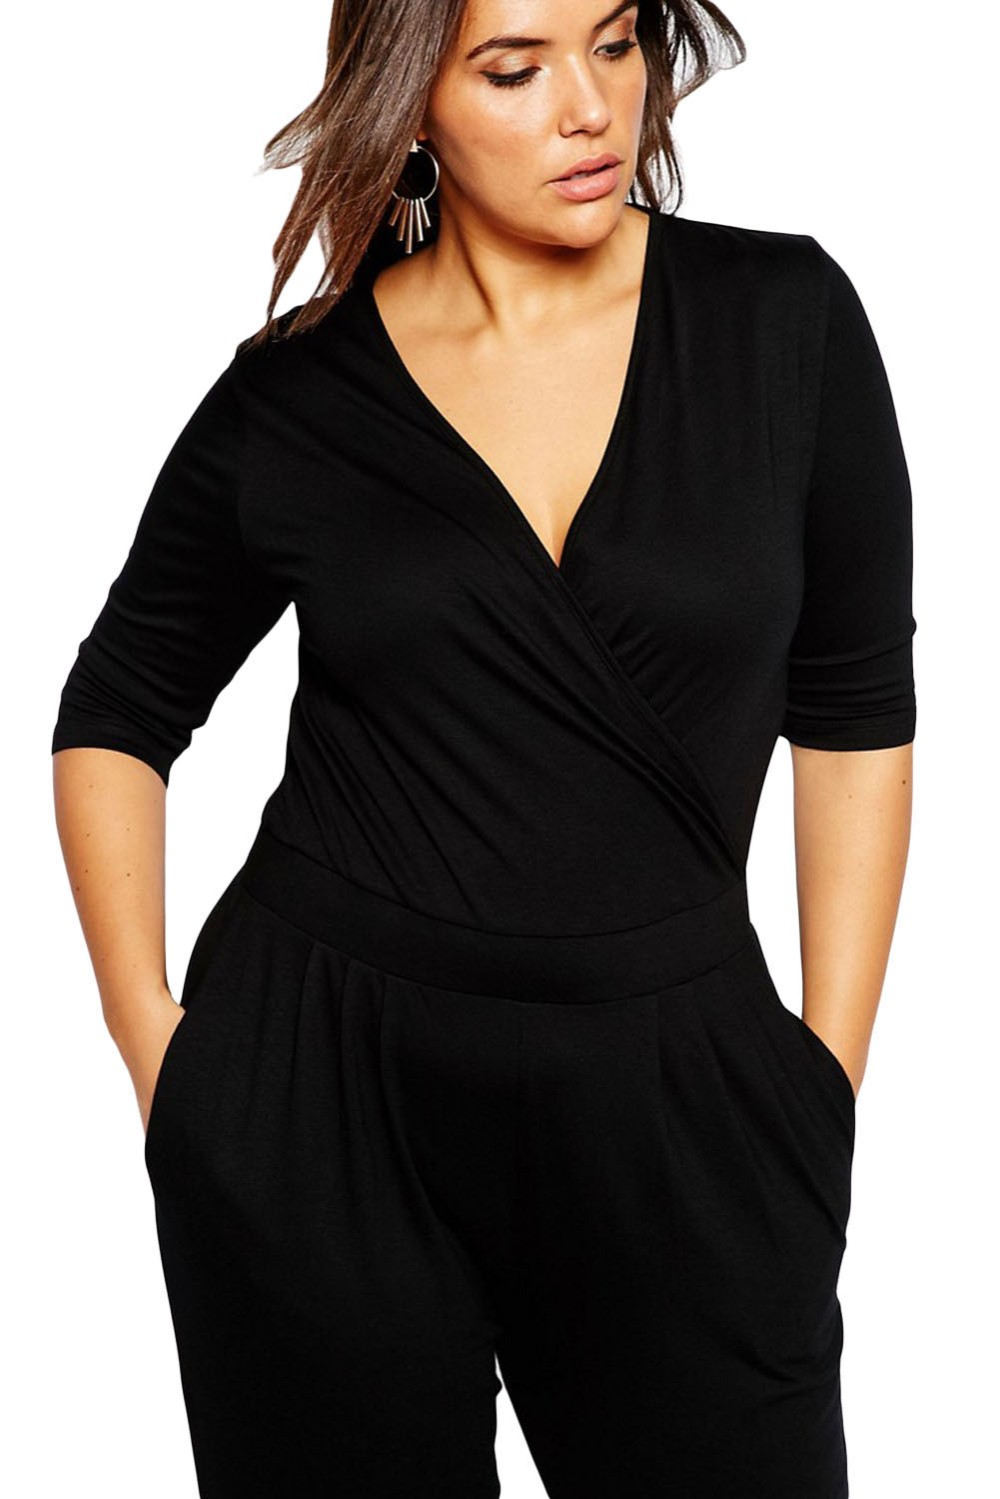 Black-Plus-Size-Wrap-V-Neck-Jumpsuit-LC64206-2-3